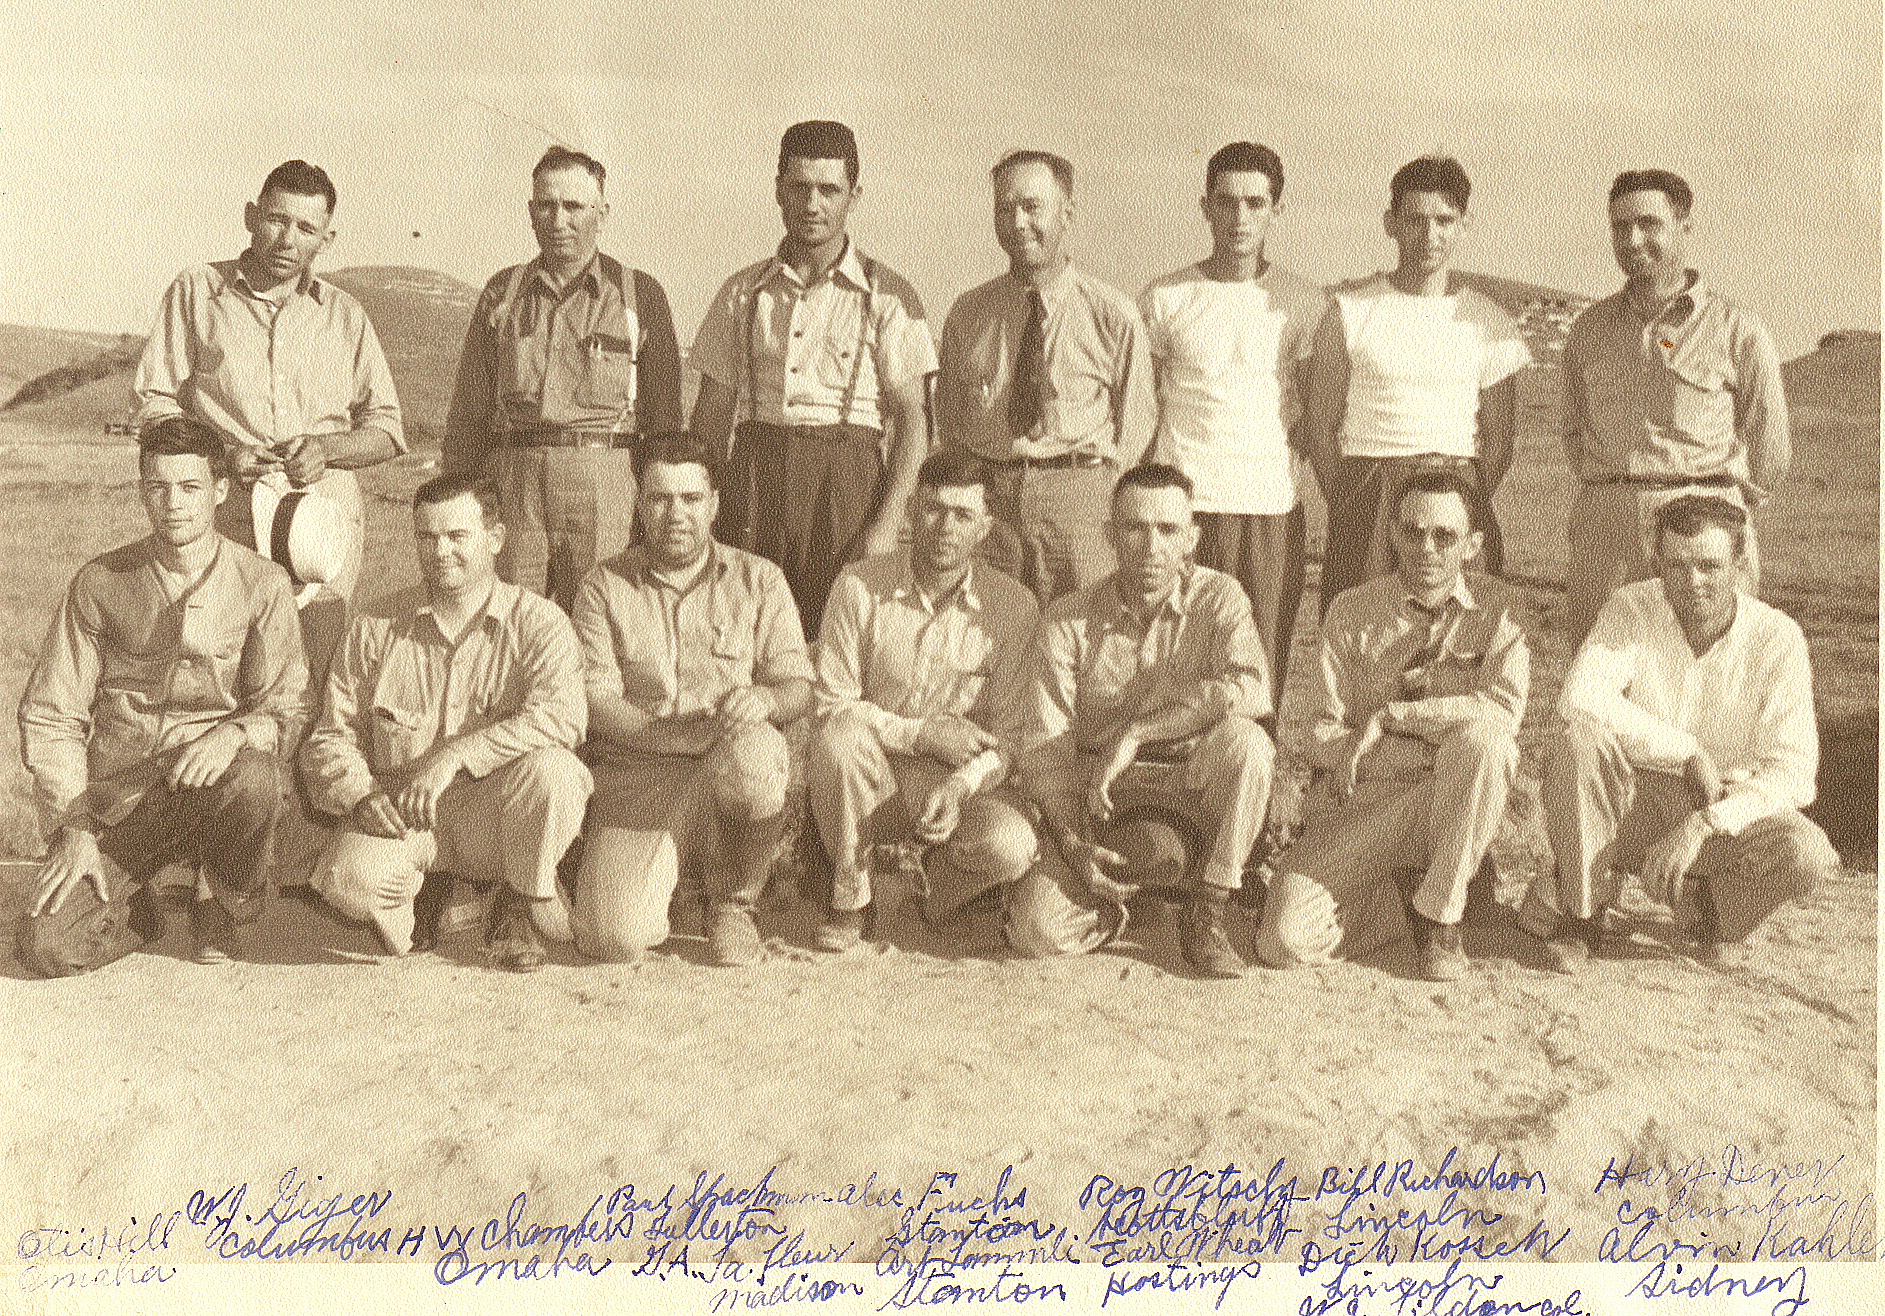 1940 State Rifle Team